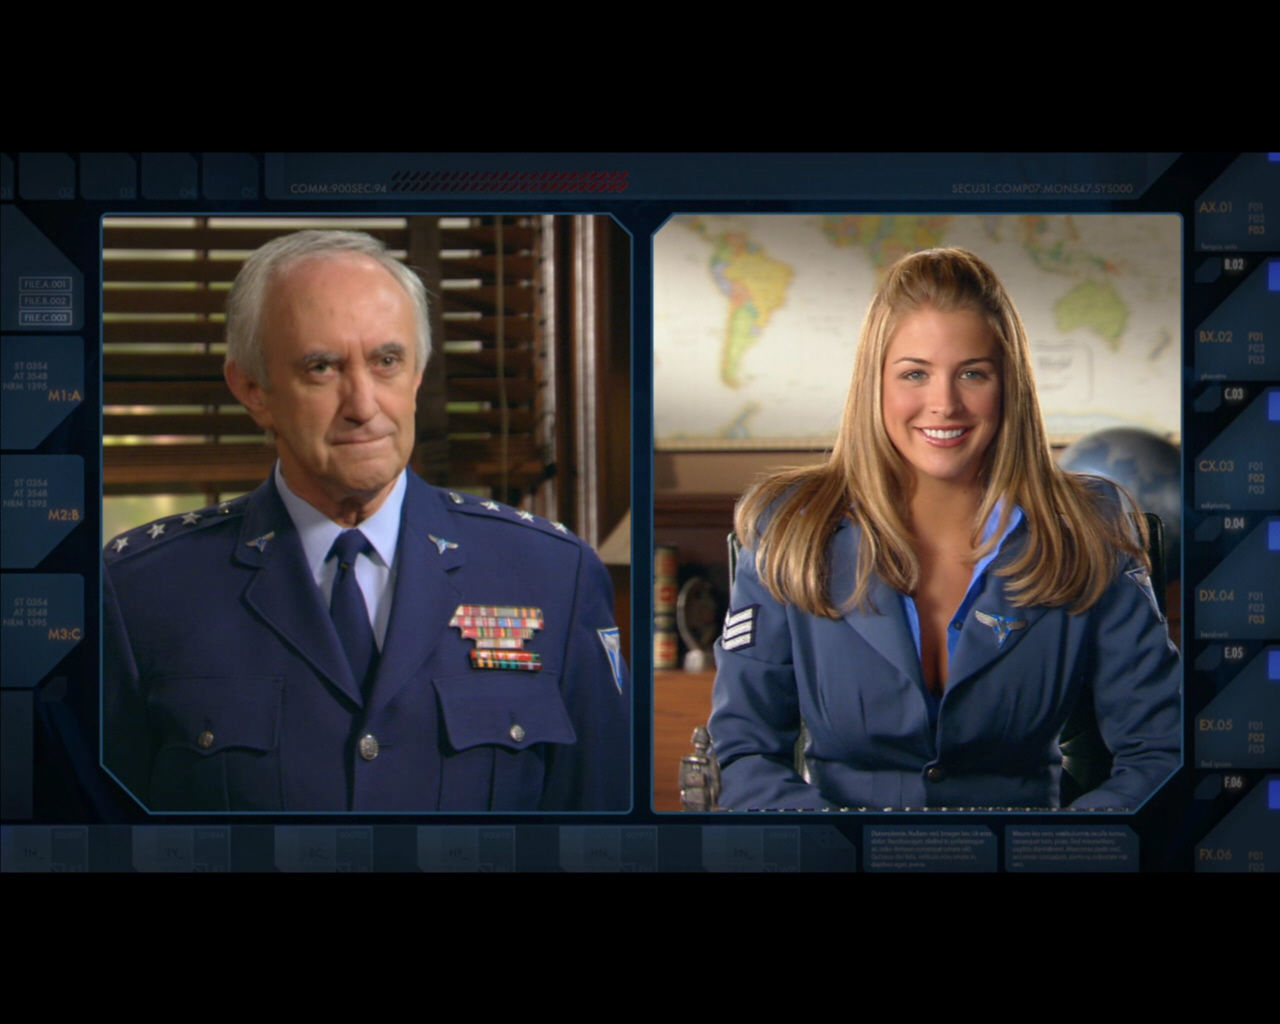 Command & Conquer: Red Alert 3 Windows Jonathan Pryce (as Robert Bingham) and Gemma Atkinson (as Eva).